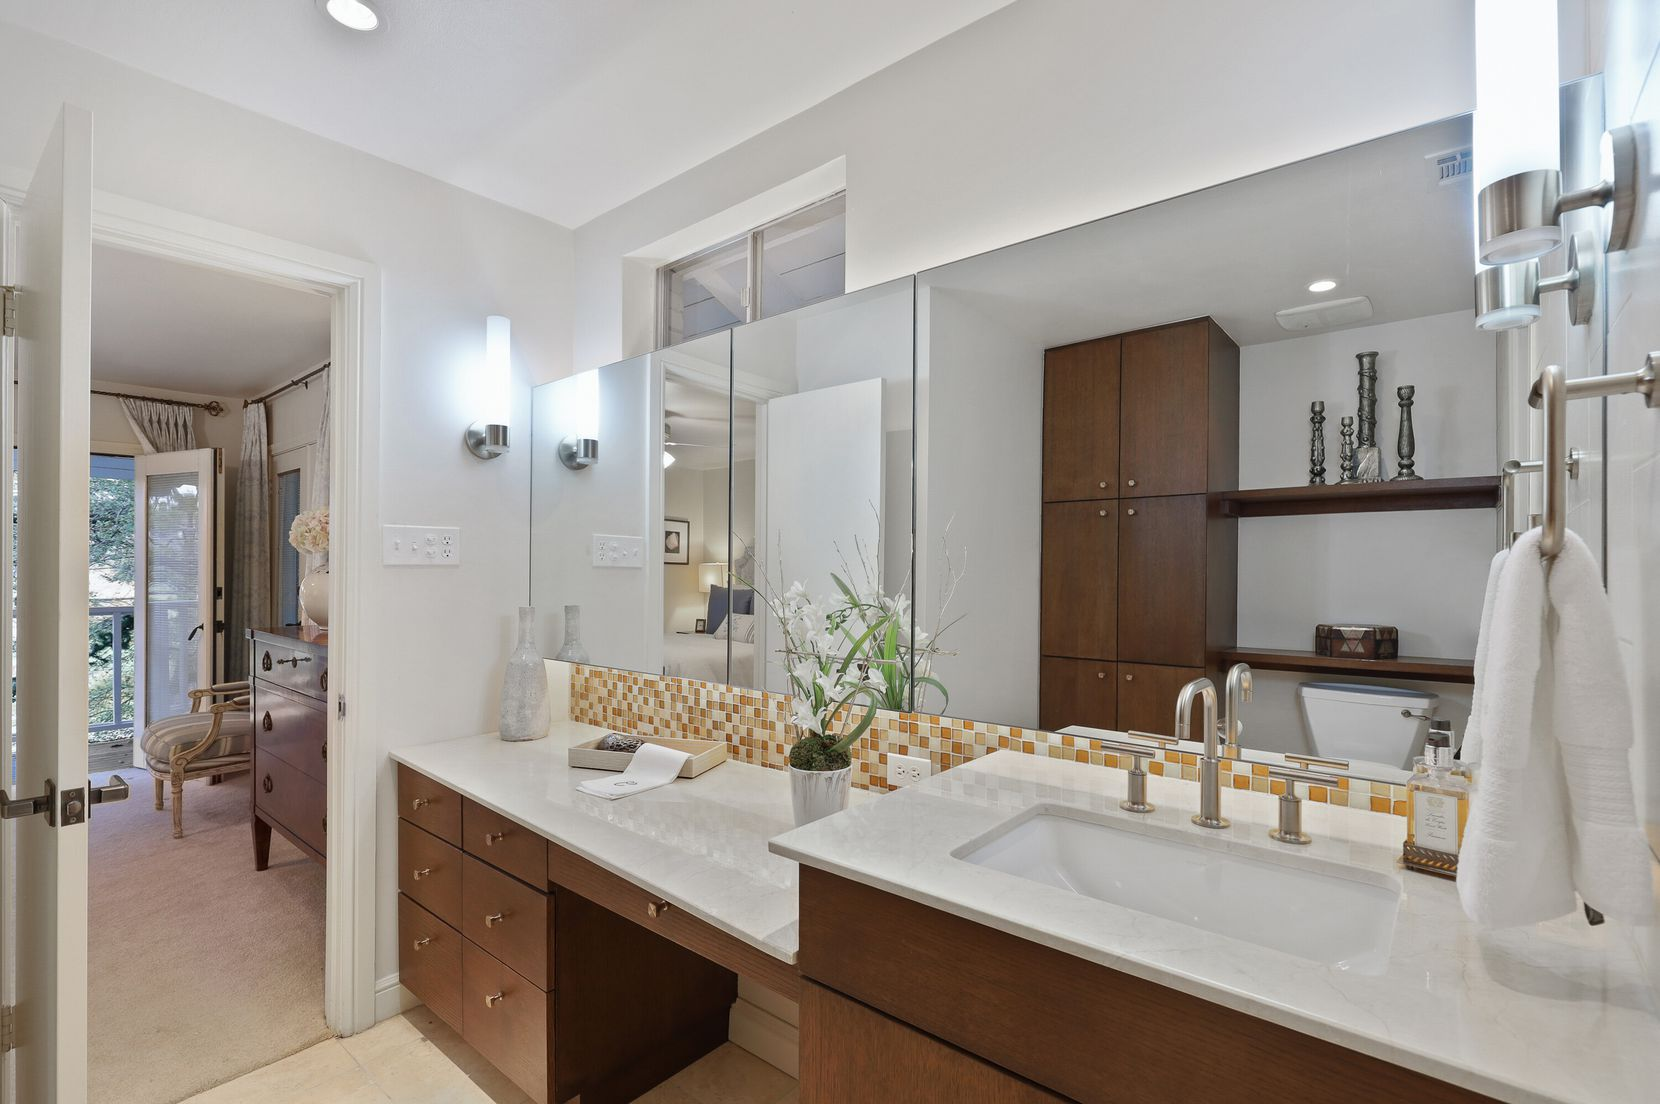 Take a look inside the home at 3815 Branchfield Drive in Dallas, TX.